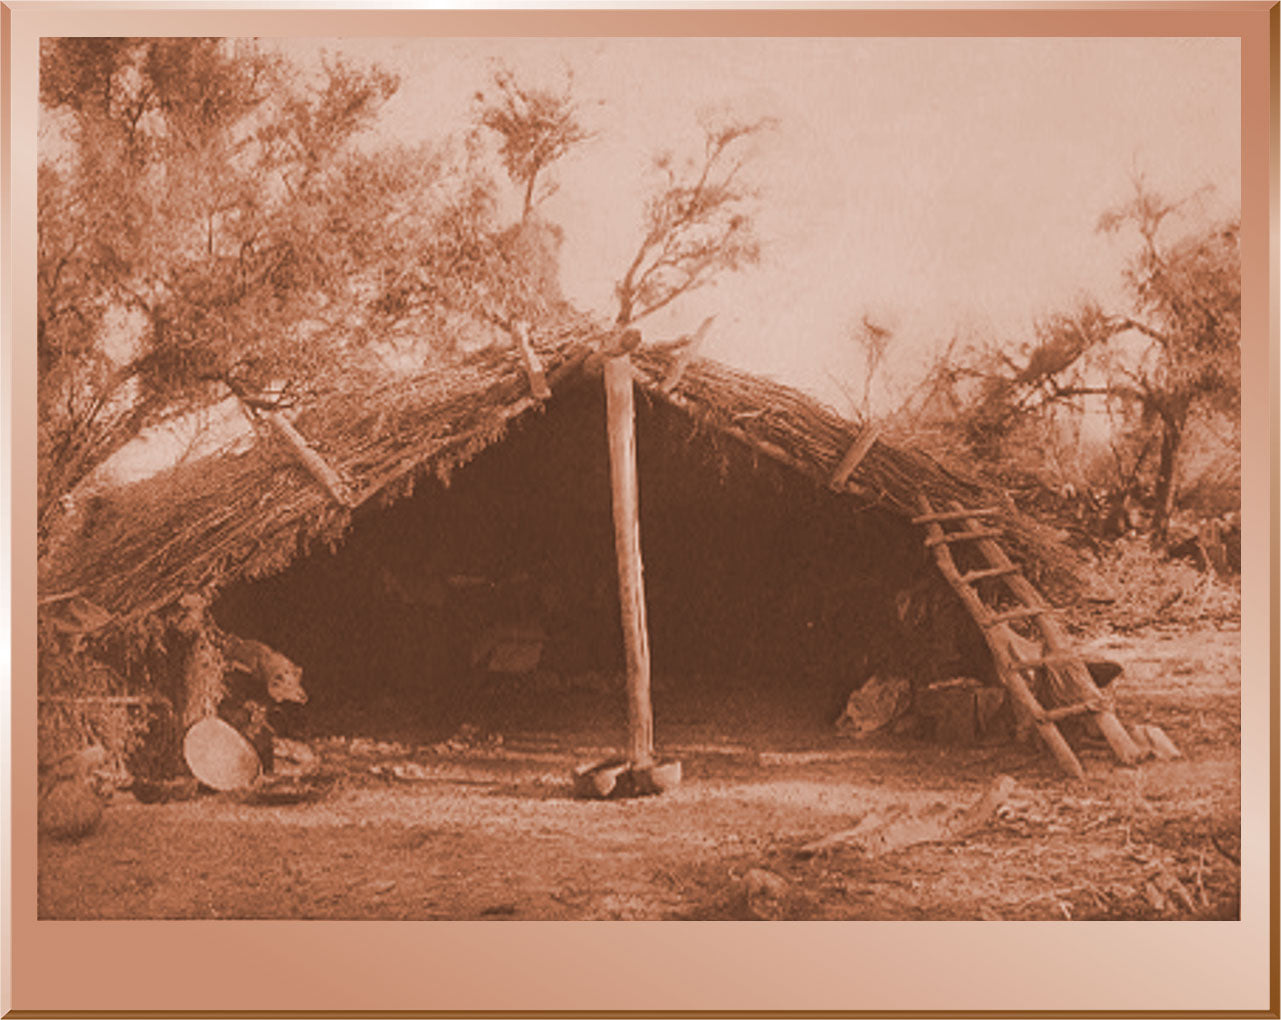 Home in the Mesquite - Chemehuevi